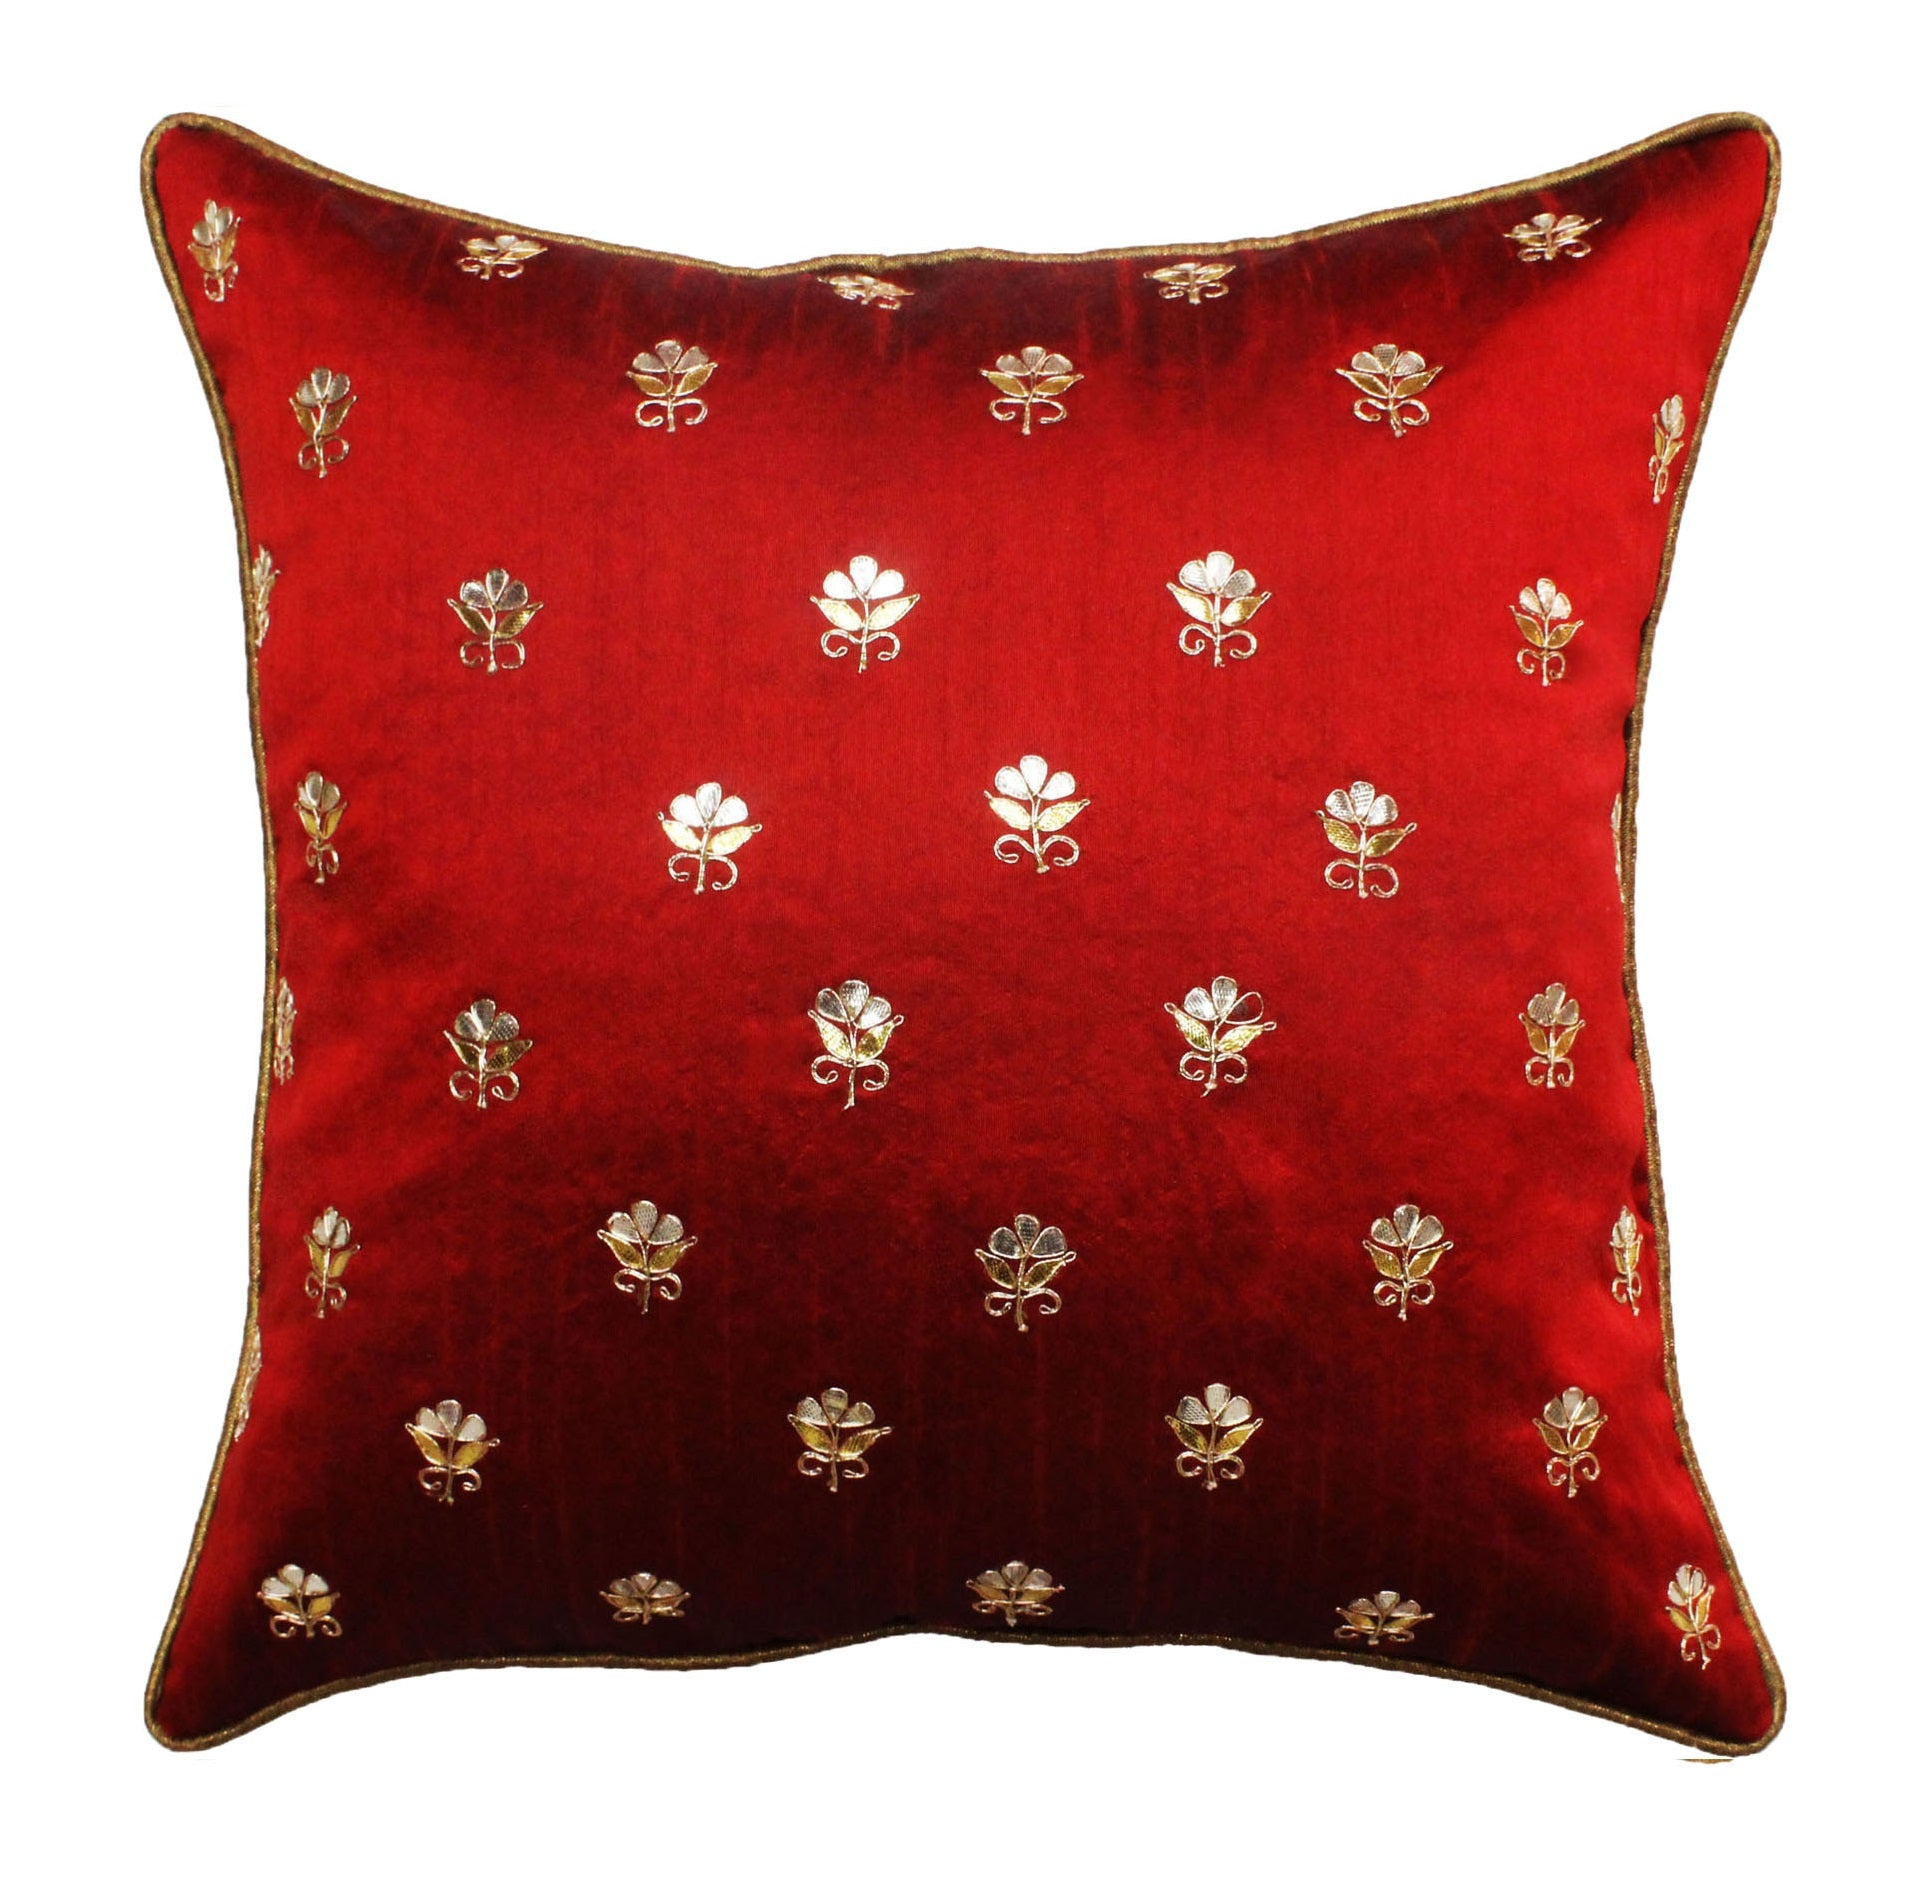 Gota Patti cushion cover - Red - Small all over booti cushion cover - 16x16 inches - Dupioni silk